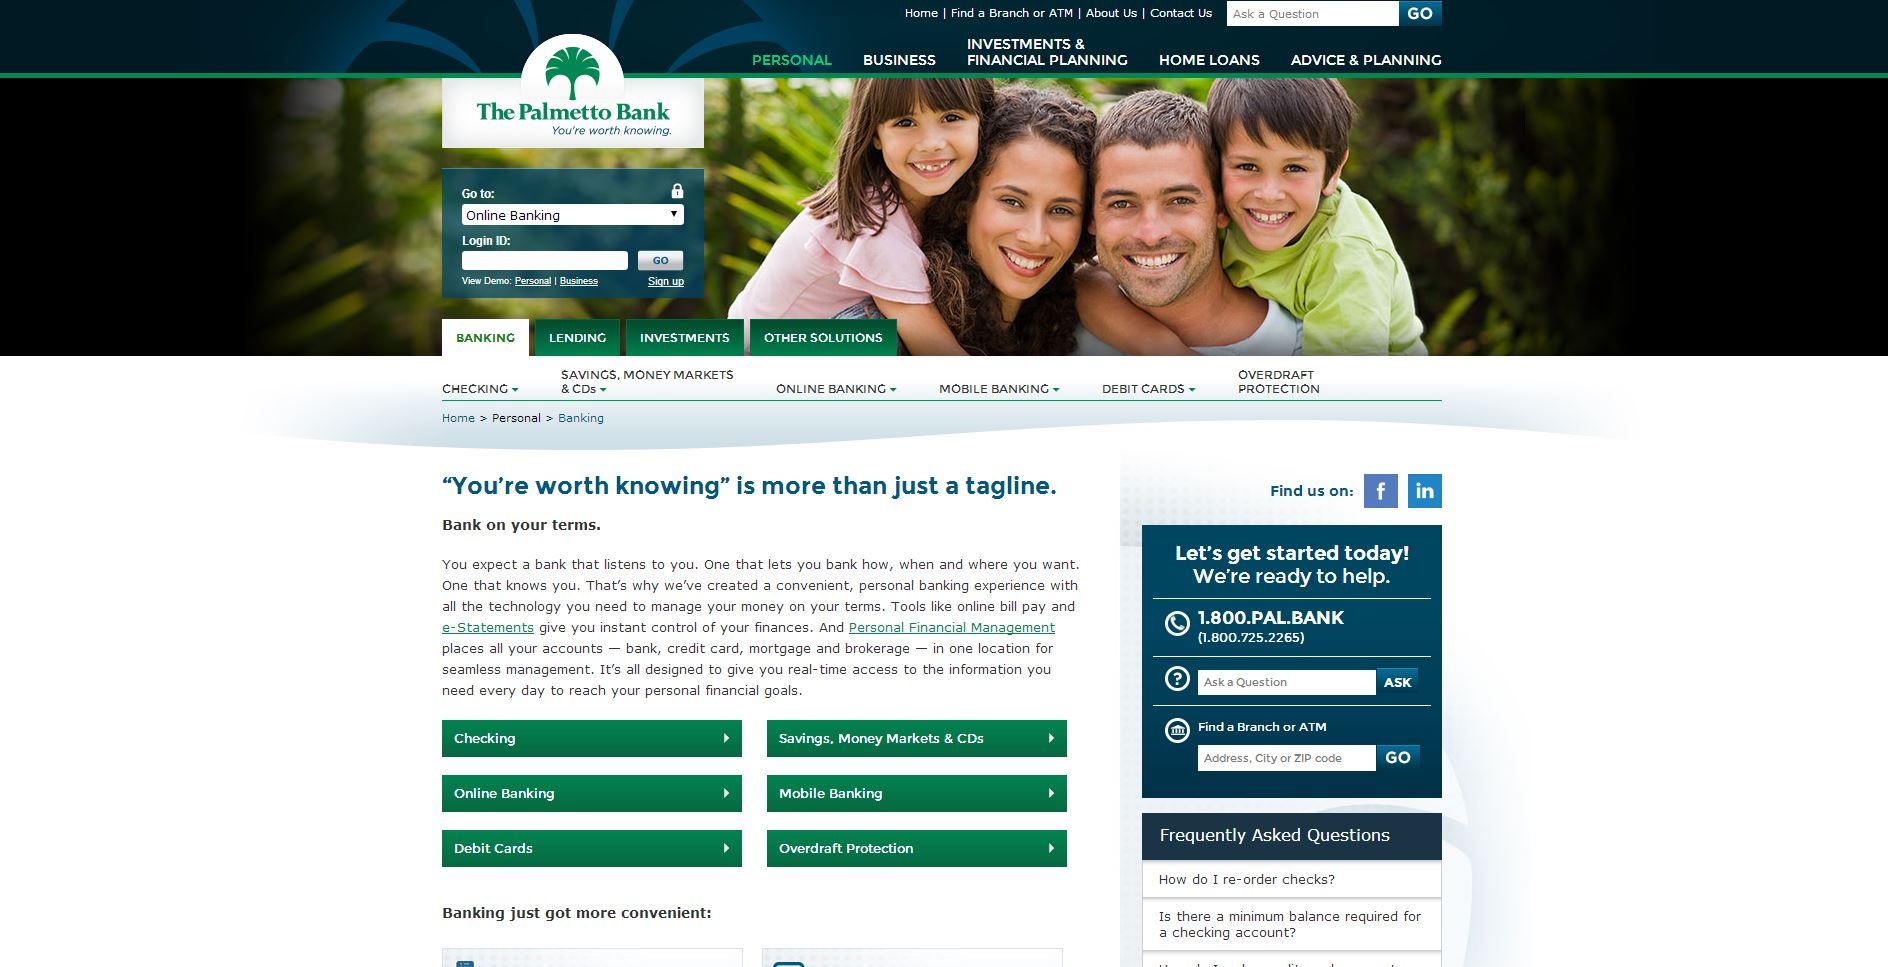 Palmetto-Bank-website-copywriting-and-seo-copywriting-by-Lochness-Marketing-personal-page